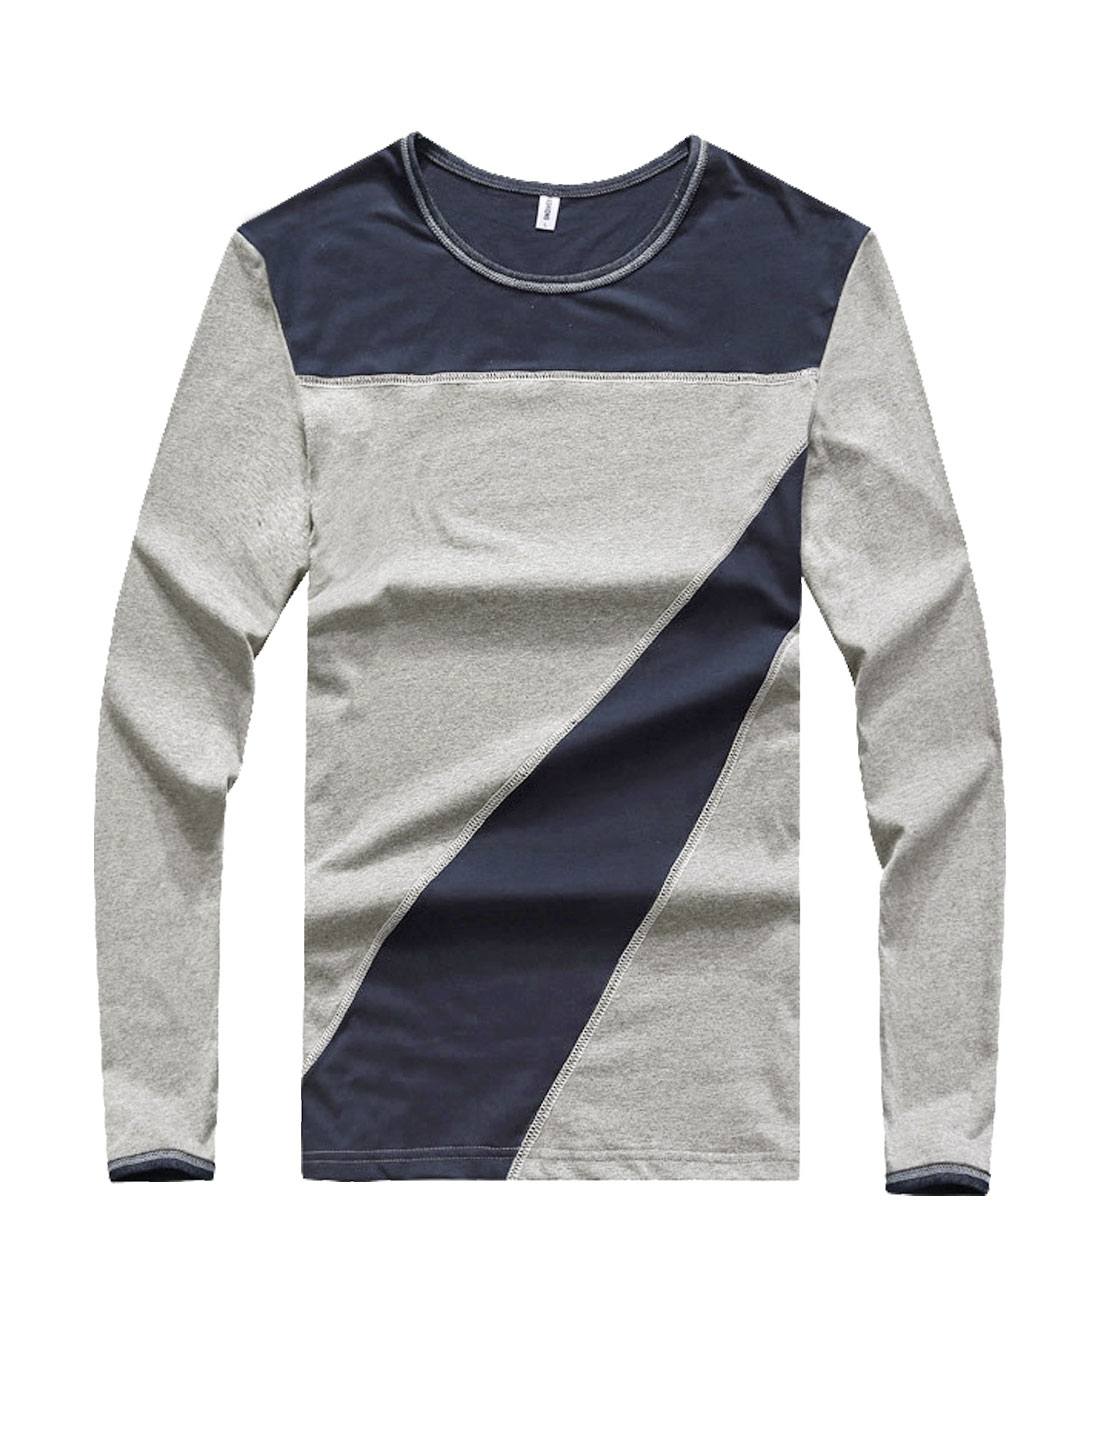 Men Crew Neck Long Sleeves Color Block Slim Fit T-Shirt Light Gray S